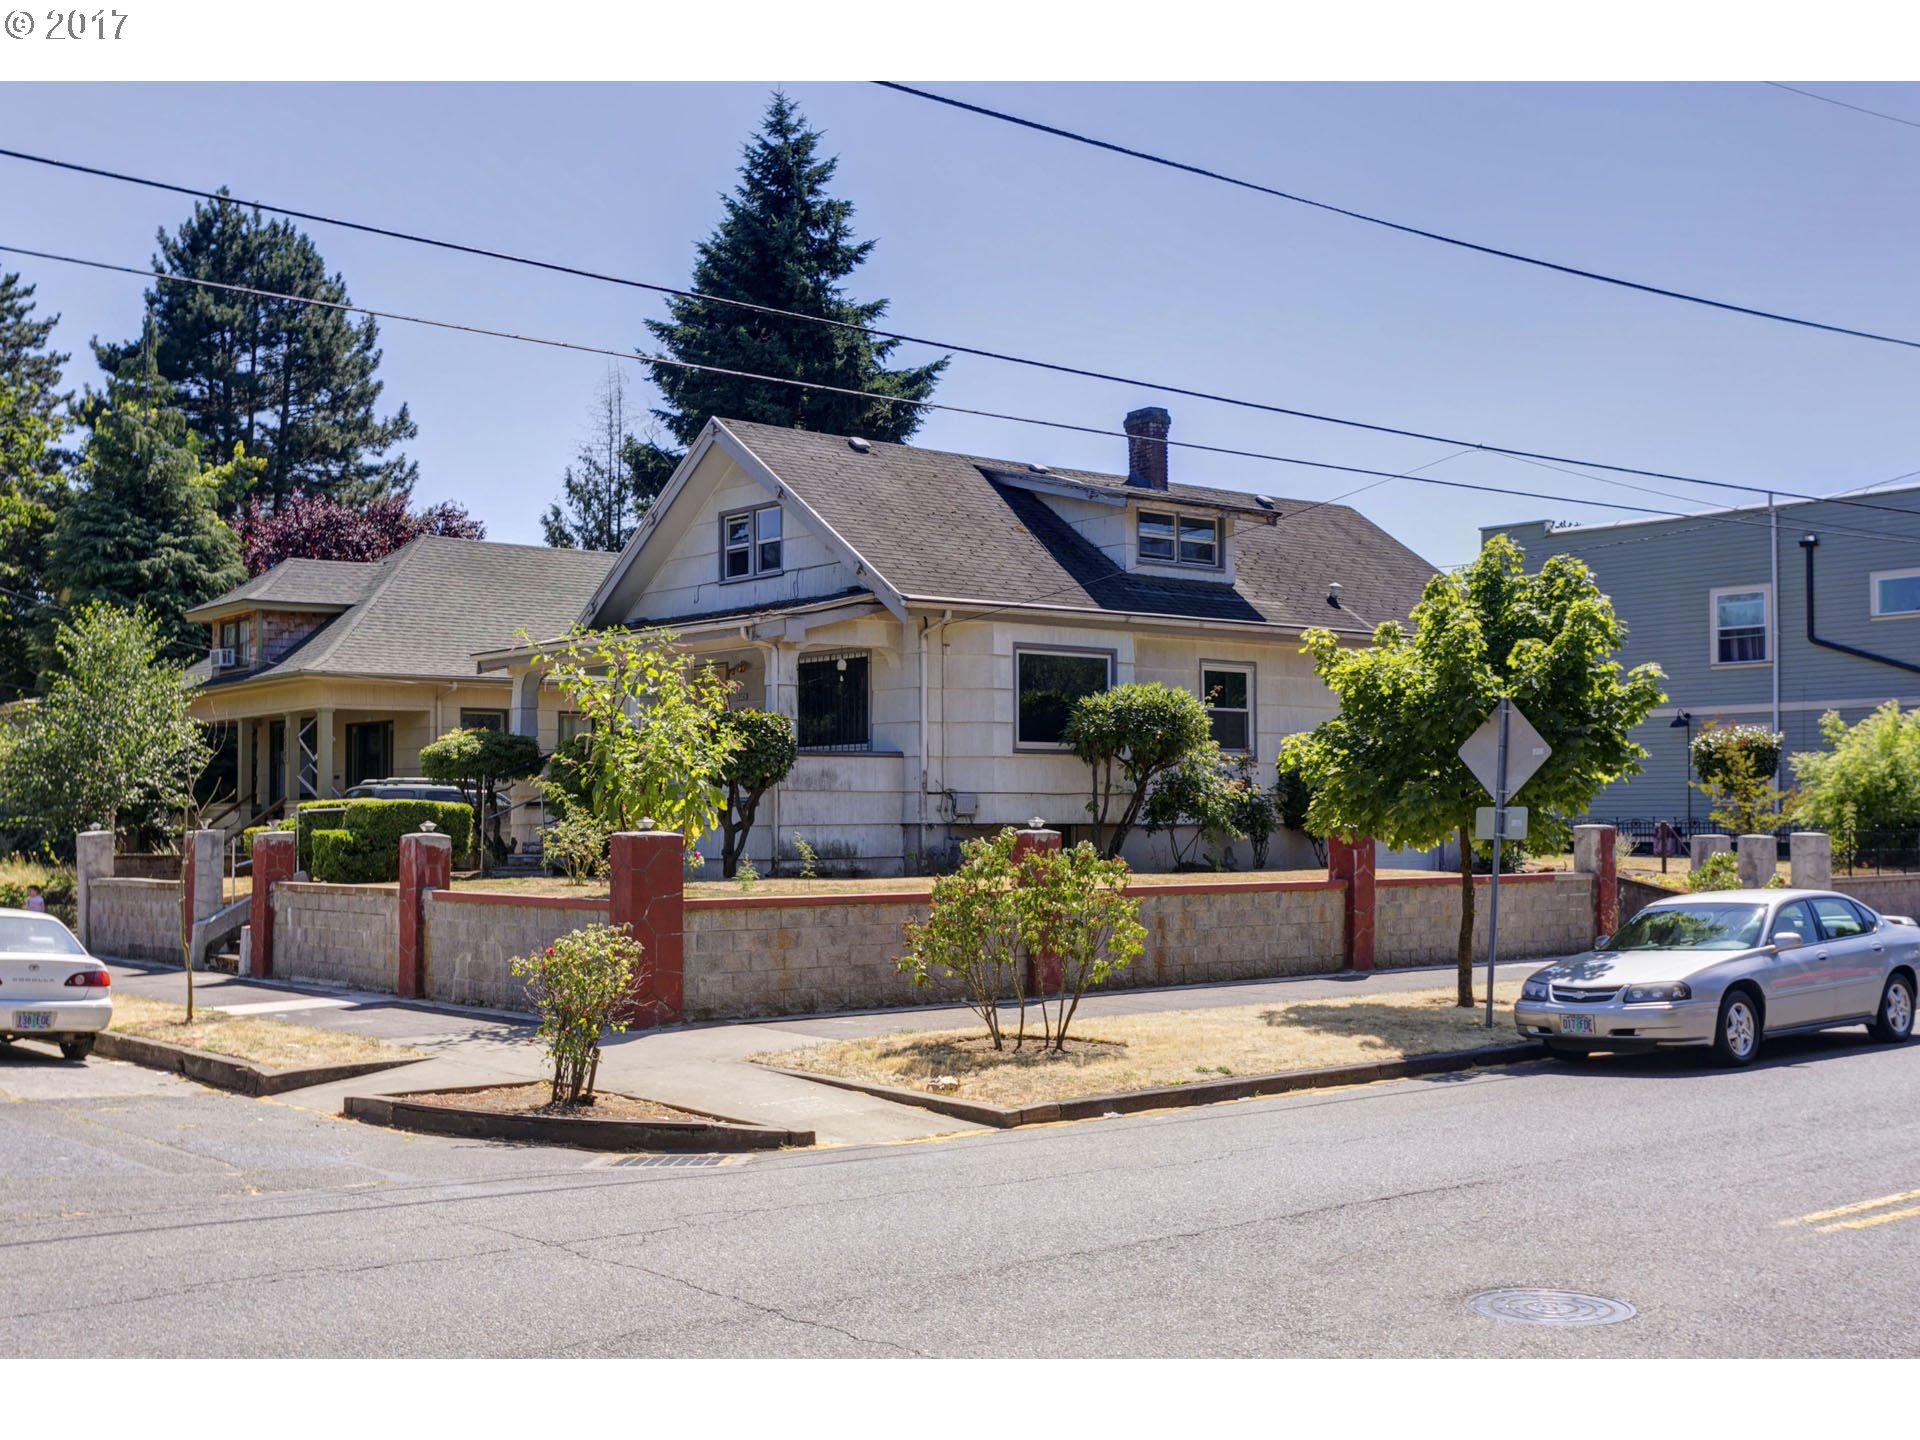 Charming Piedmont craftsman cosmetic fixer that overlooks Peninsula Prk rose grdns & fountain. GREAT potential & amazing close-in location (84/91 wlk/bikescore) in heart of N/NE PDX. Wlkng dist to shops, cafes, pubs, transit, prks, schools. Hrdwds, prch, bkfst nook & lrg kitch, 2bths, part fin bsmt w/ non-conform 4th bedrm & updated hi-eff Trane gas furn w/ A/C, newer pex plmbng supply lines, updated elct panel, newer dbl paned windows!